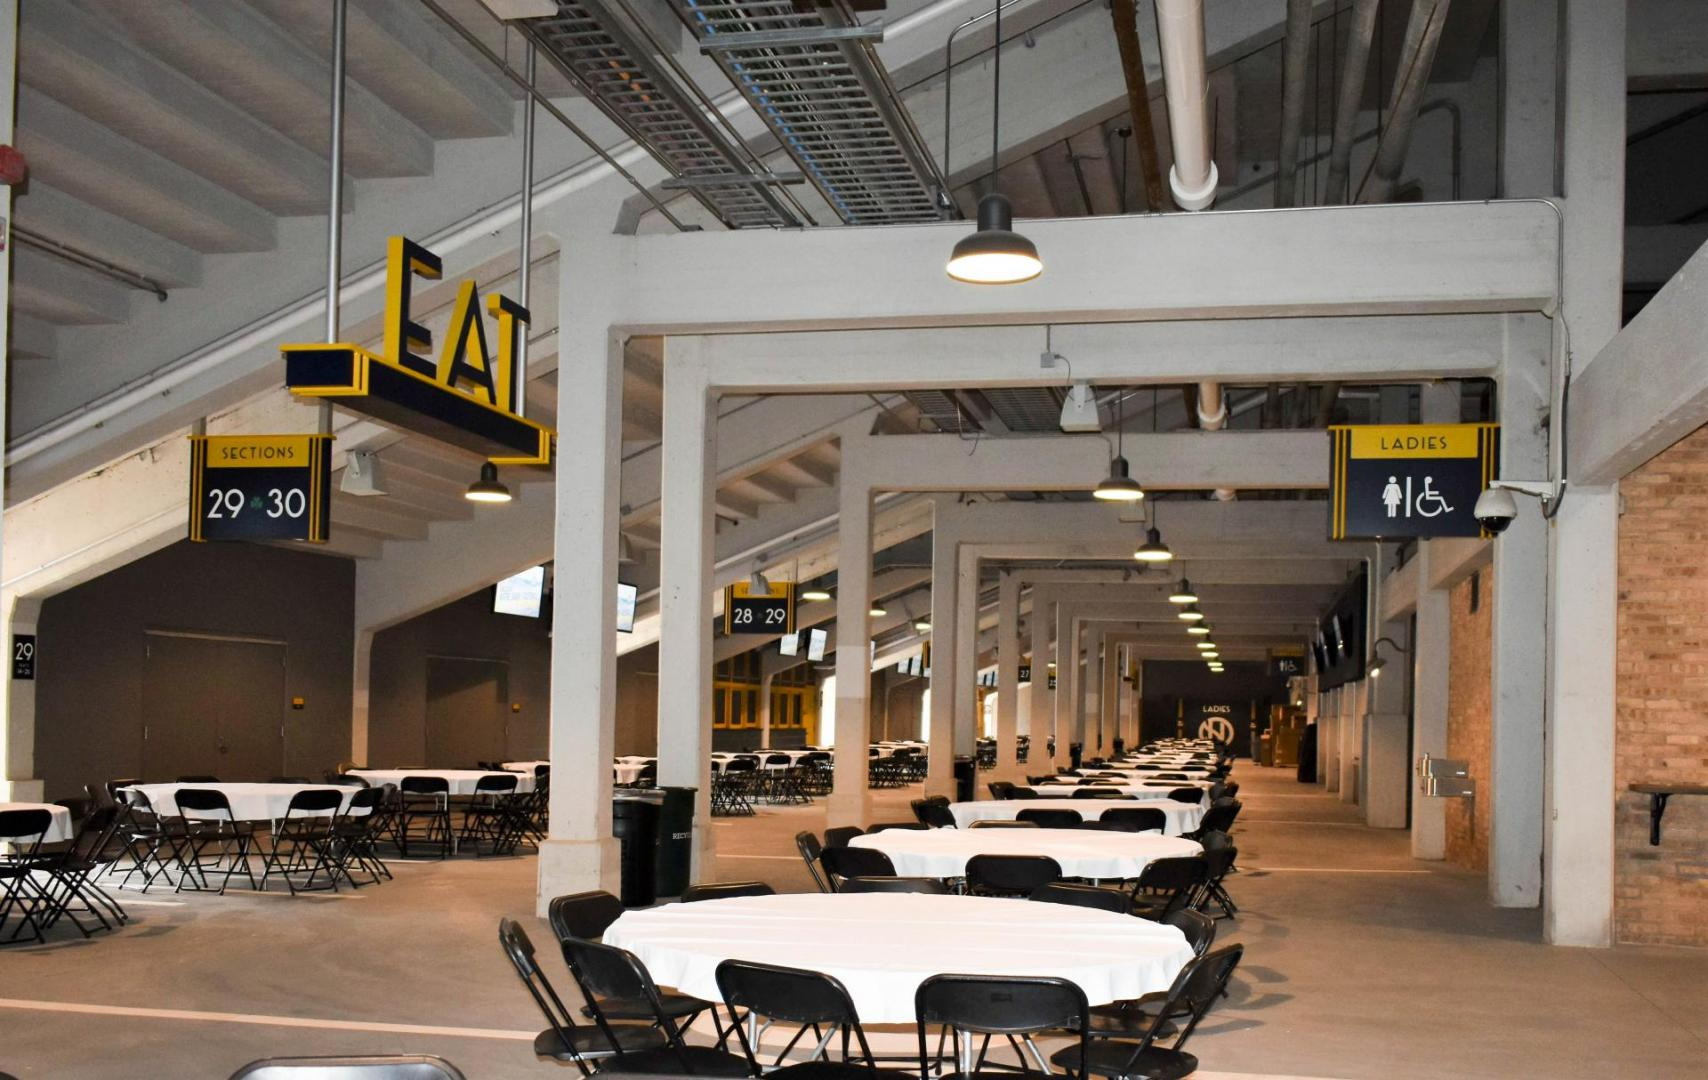 Notre Dame Stadium Concourse With Tables and Chairs Rentals